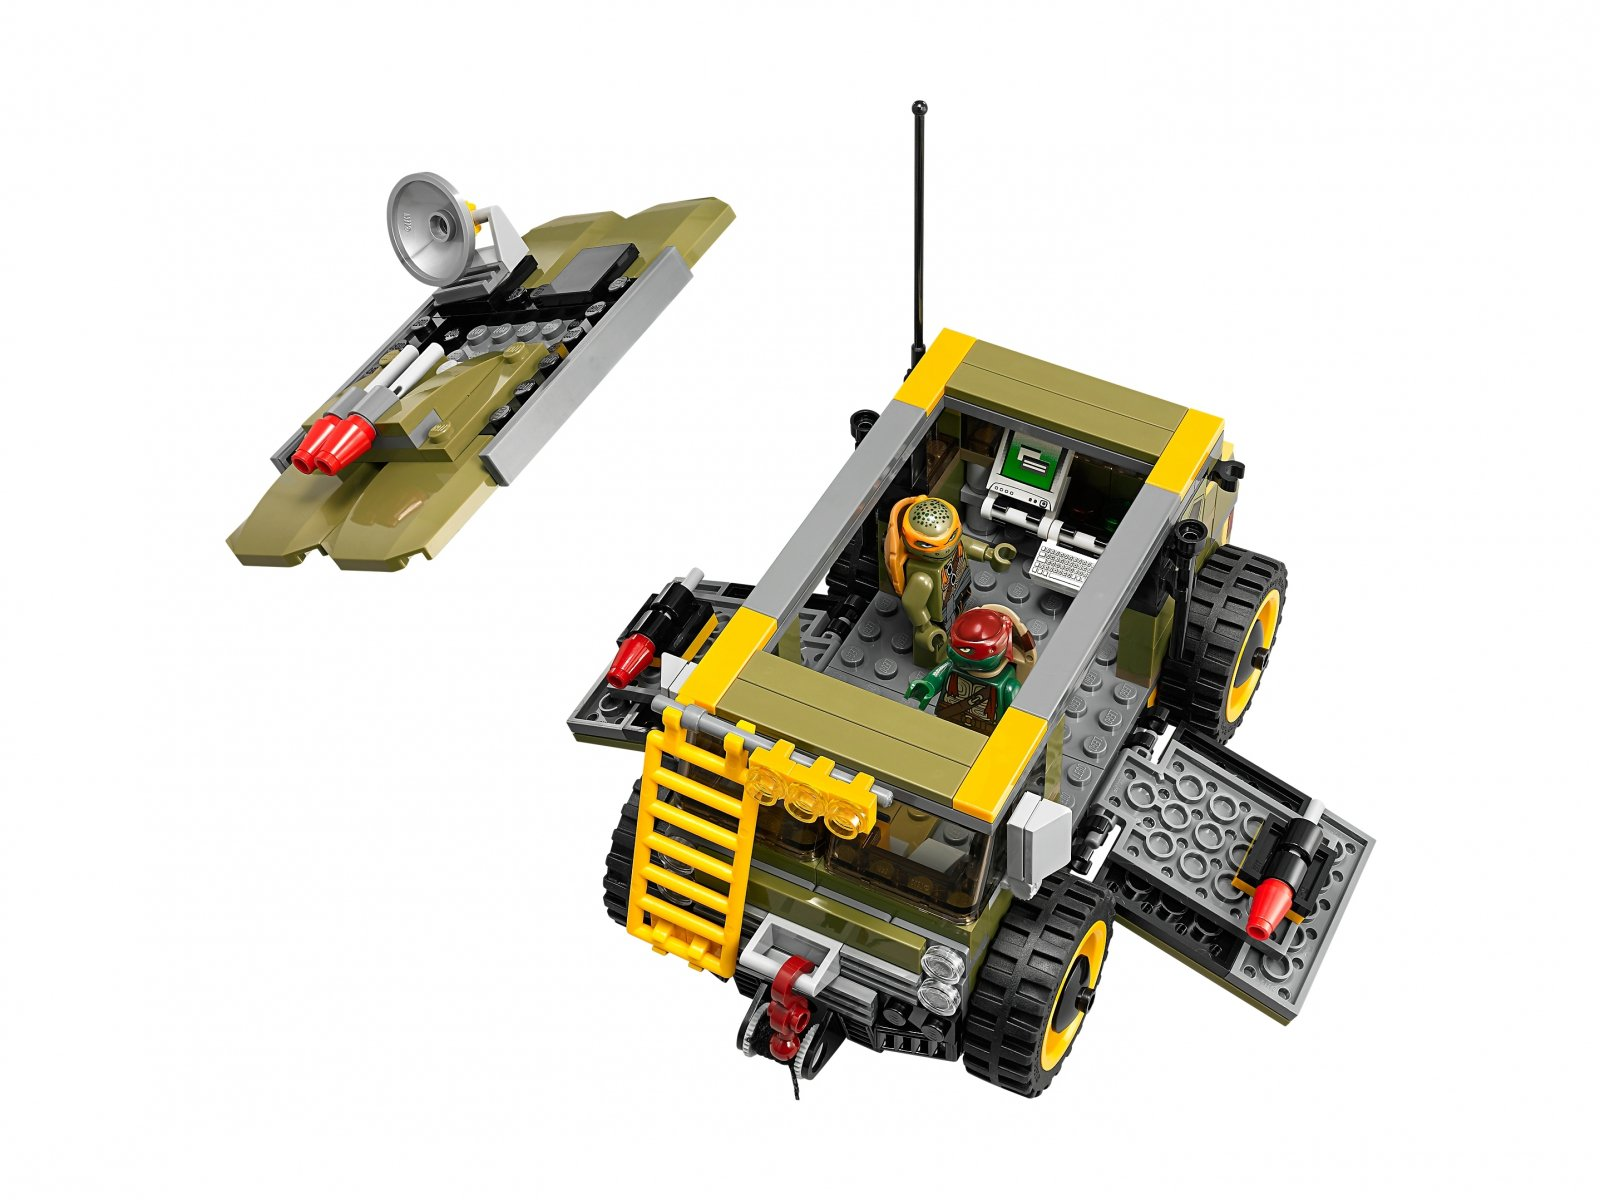 LEGO Teenage Mutant Ninja Turtles™ 79115 Furgonetka żółwi